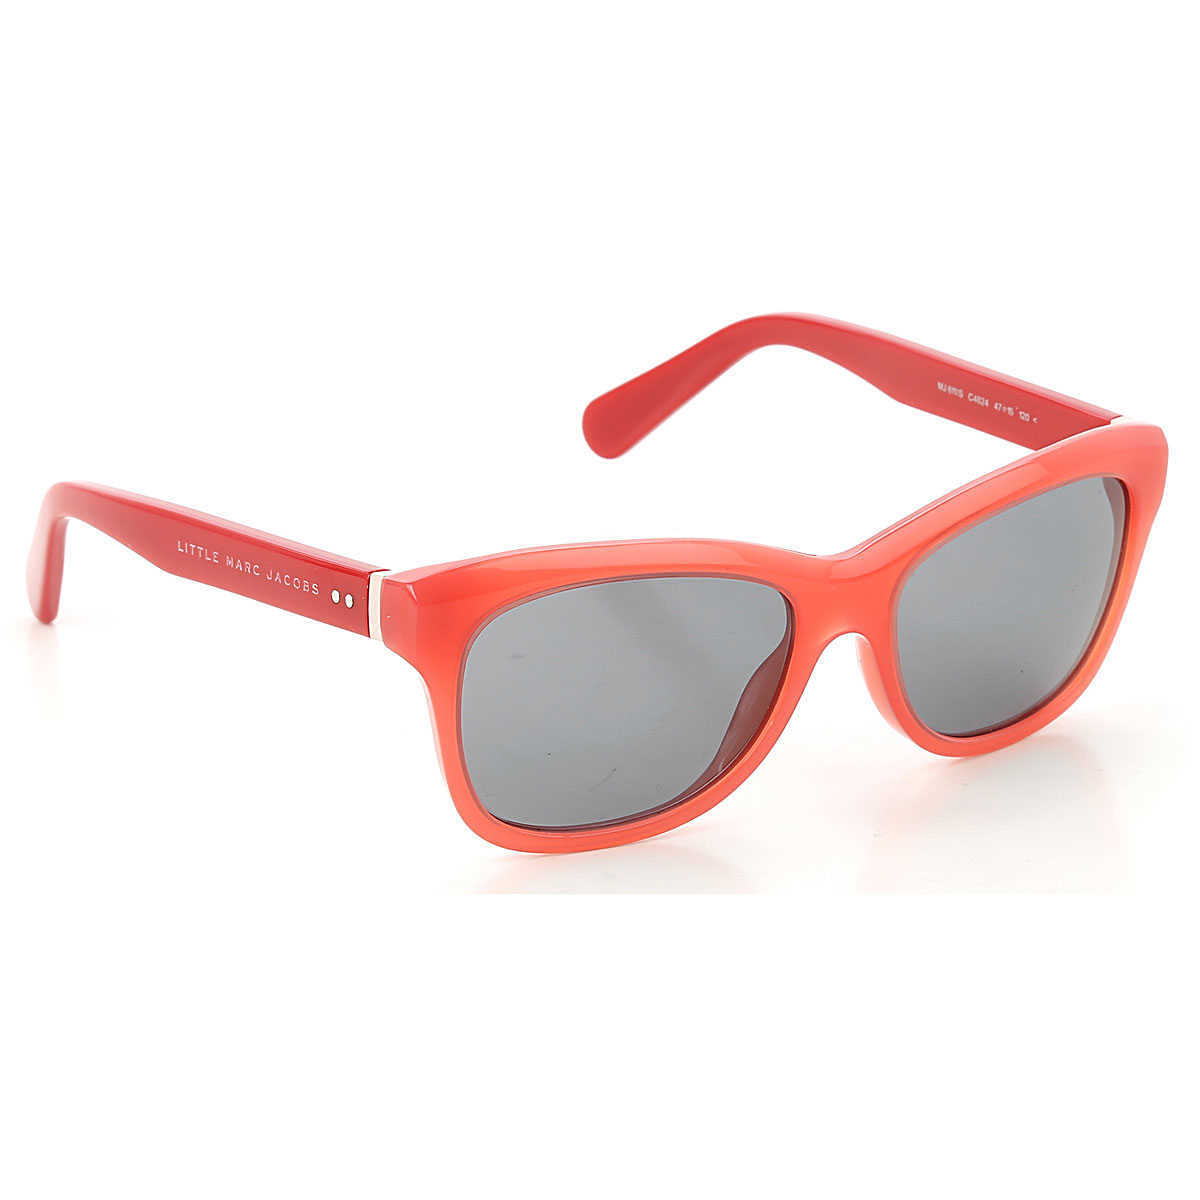 Marc Jacobs Kids Sunglasses for Boys On Sale Red Pink DK - GOOFASH - Mens SUNGLASSES